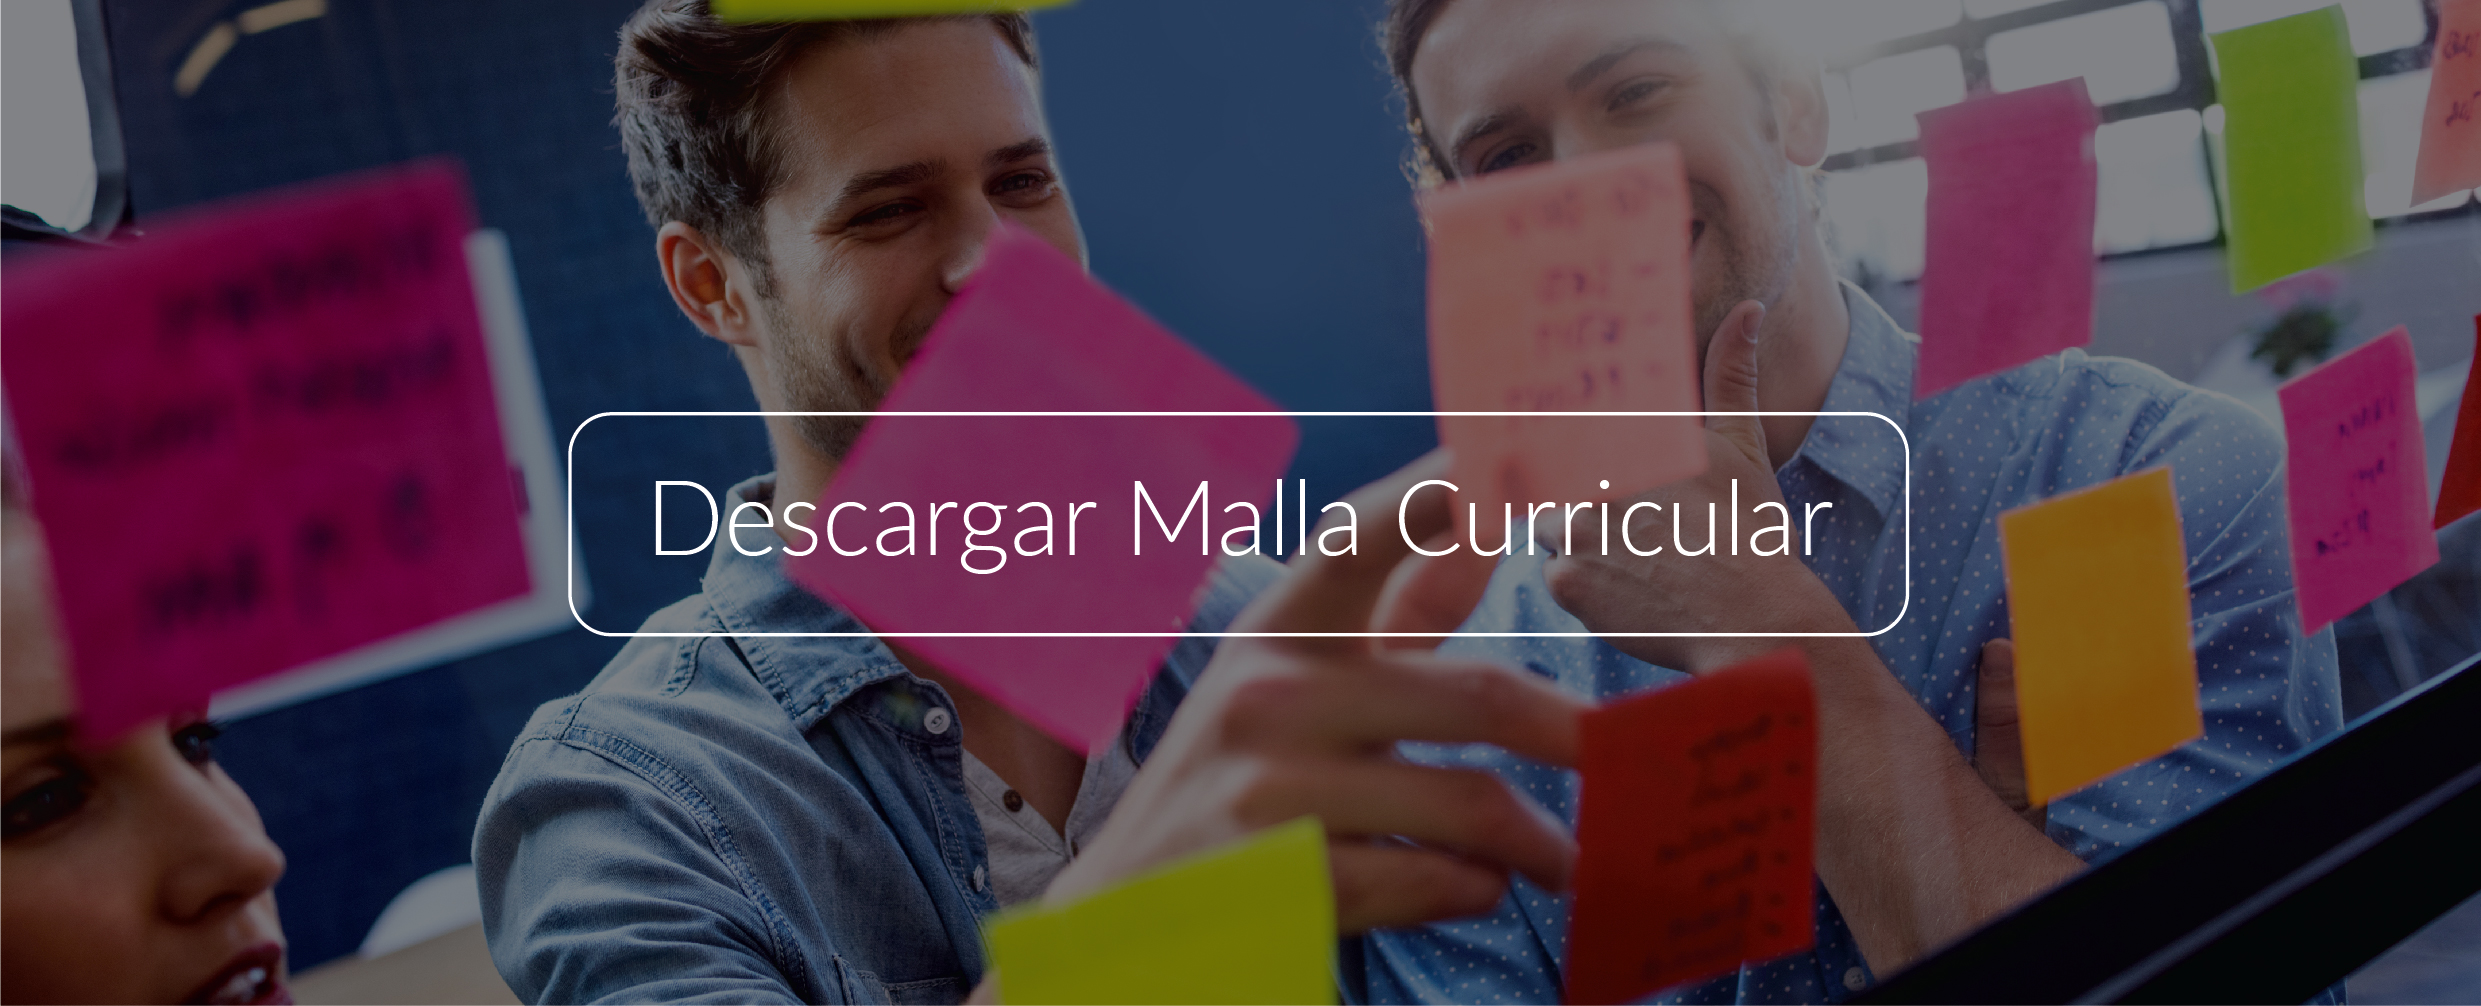 MALLA_CURRICULAR_SCRUM_2018-02